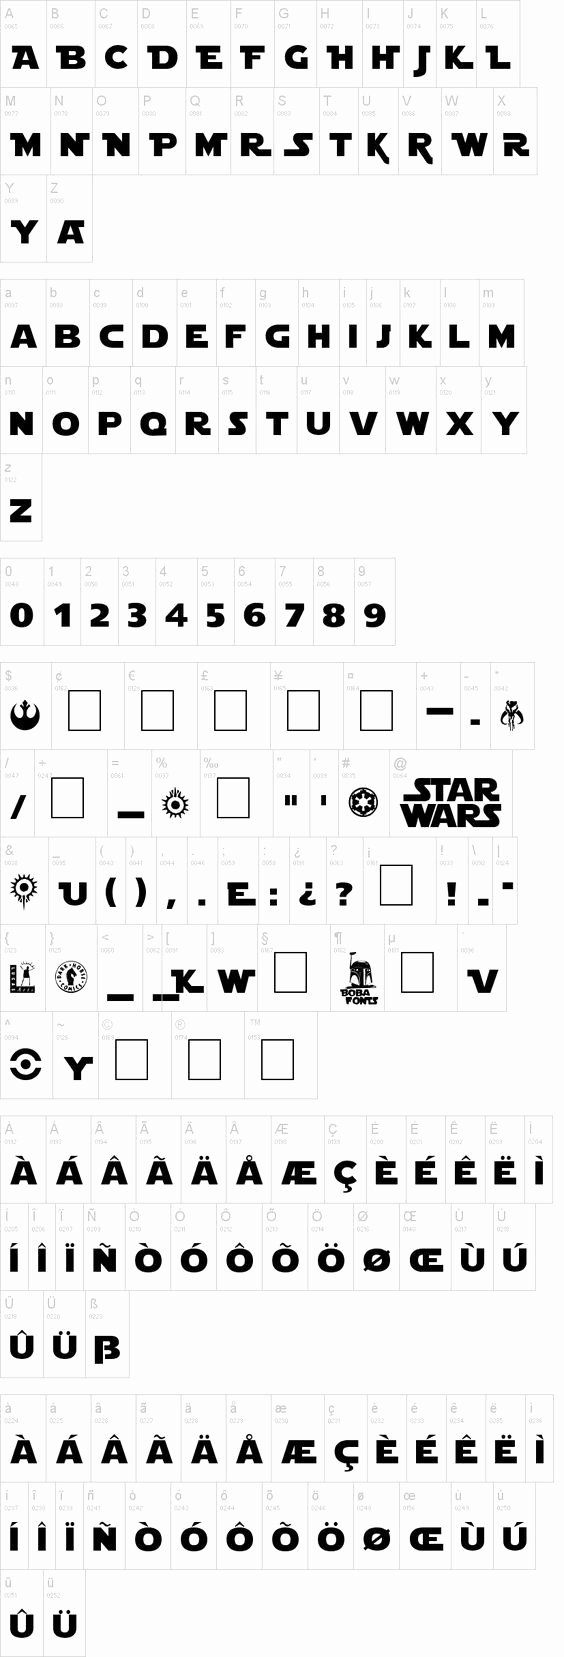 Star Wars Letter Stencils Awesome 25 Unique Star Wars Stencil Ideas On Pinterest